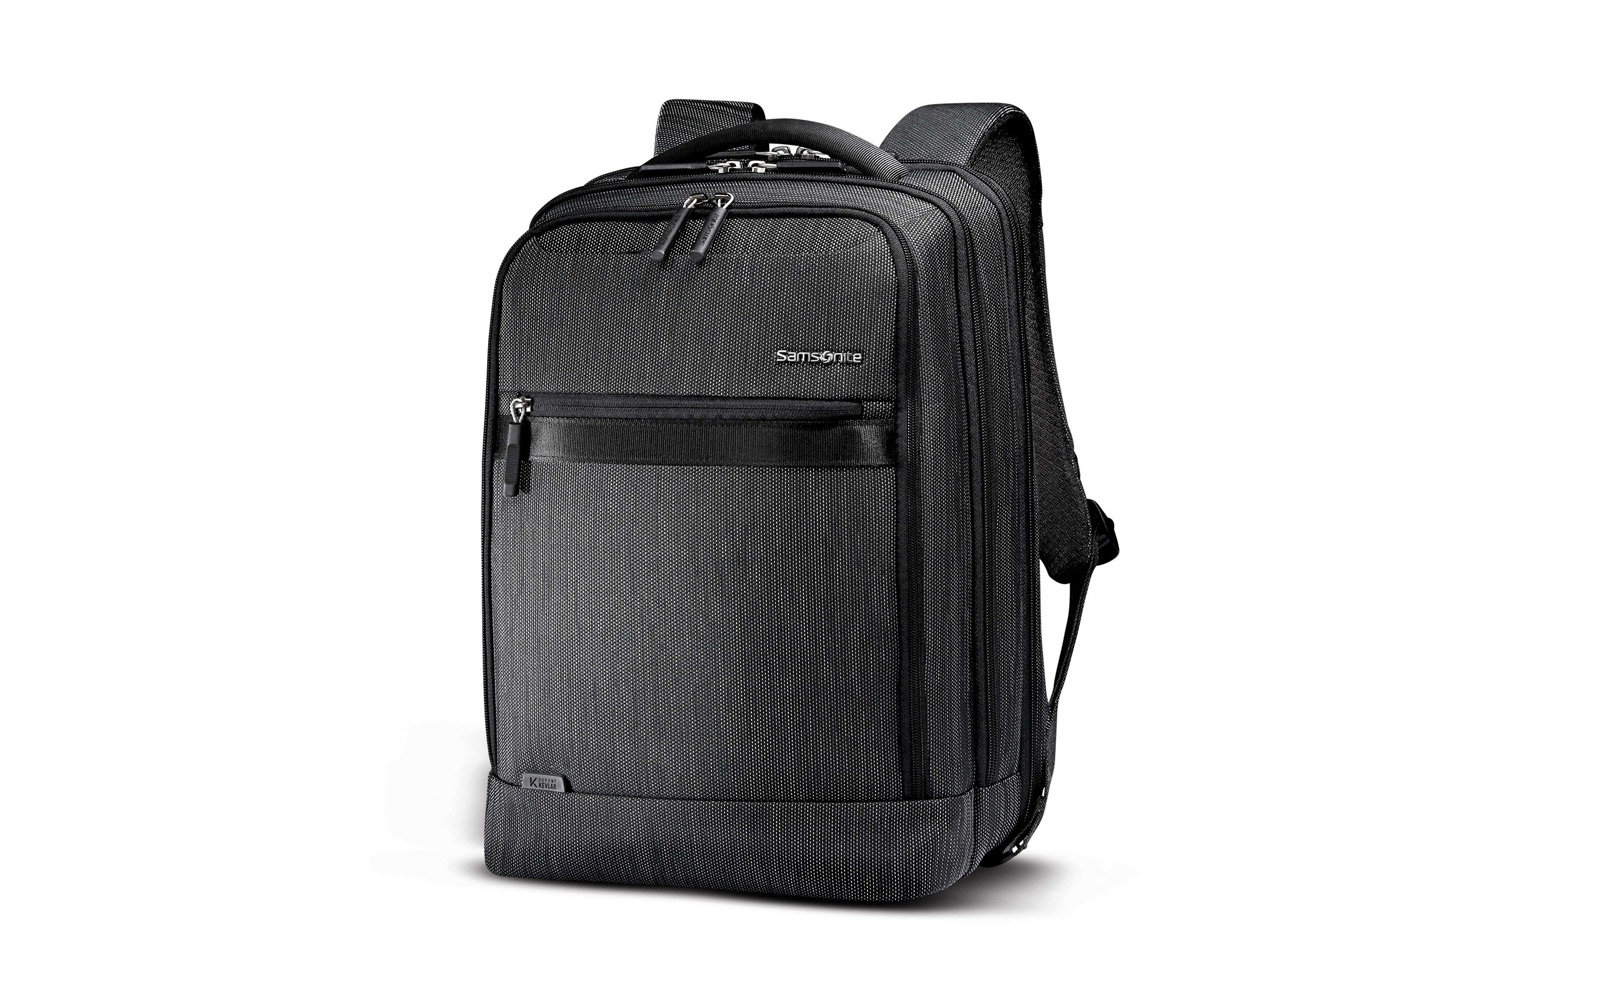 Samsonite SxK Backpack